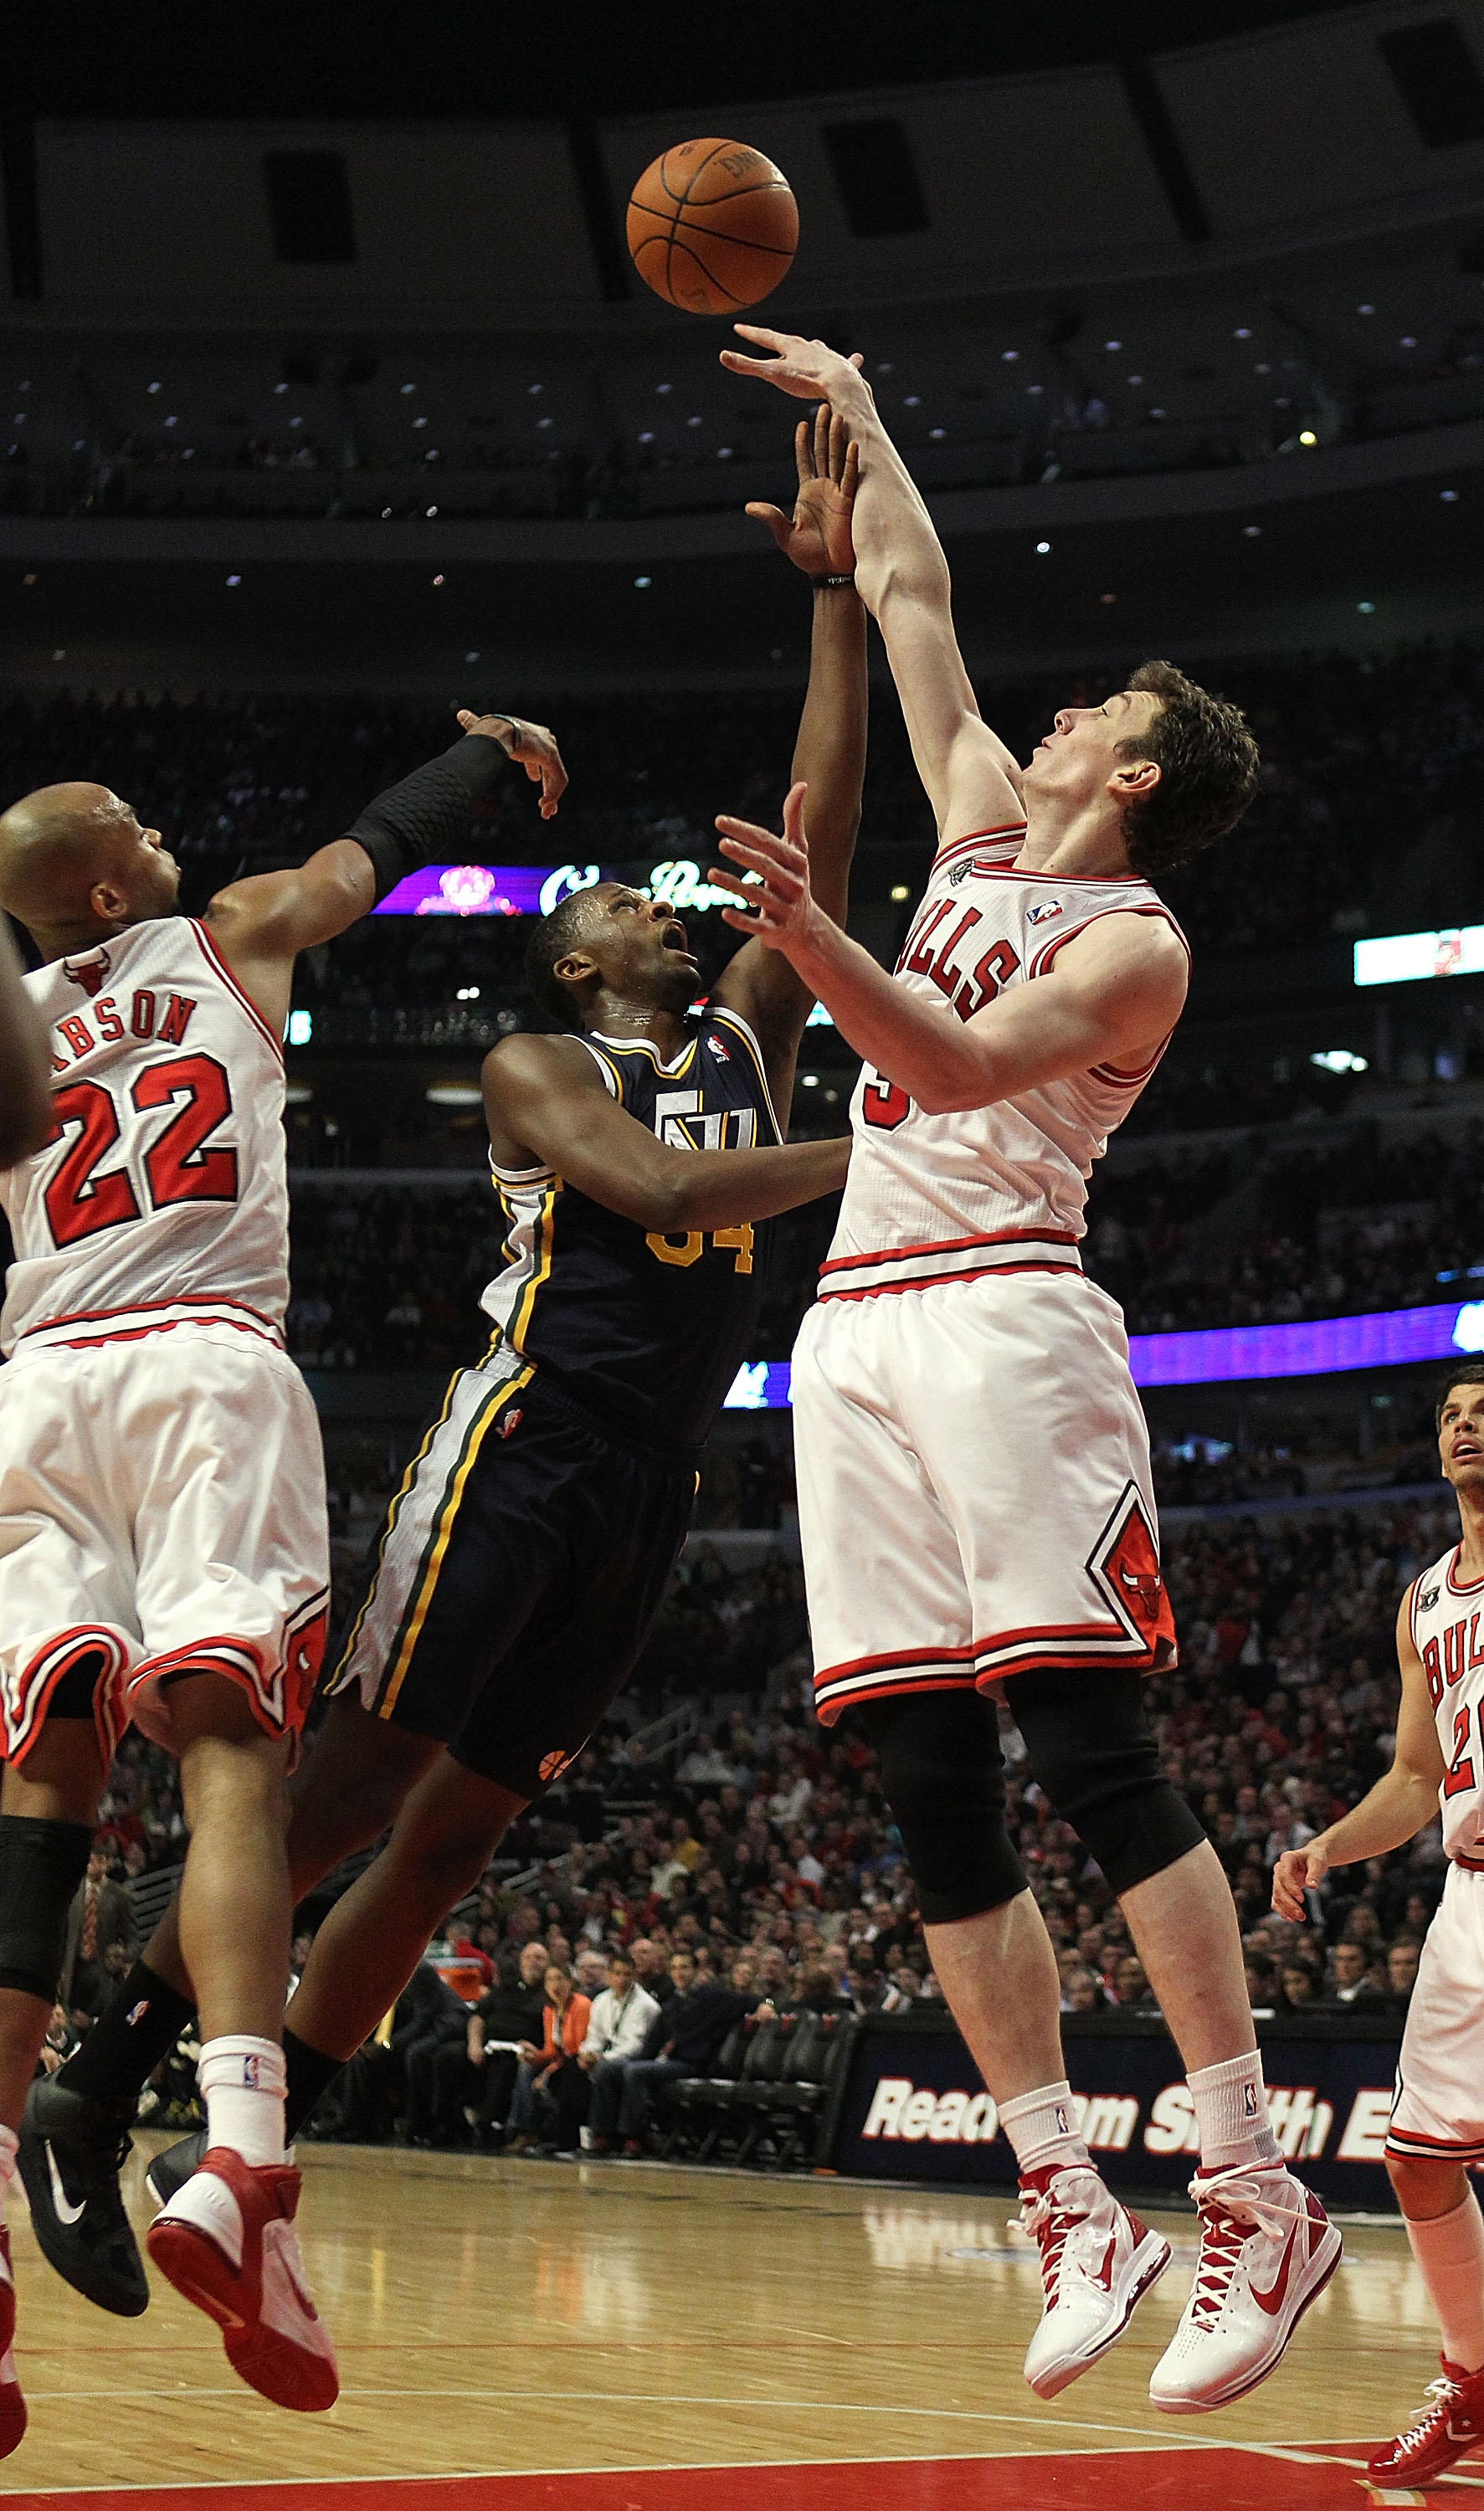 CHICAGO, IL - MARCH 12: Omer Asik #3 of the Chicago Bulls blocks a shot by C.J. Miles #34 of the Utah Jazz as Taj Gibson #22 also defends at the United Center on March 12, 2011 in Chicago, Illinois. NOTE TO USER: User expressly acknowledges and agrees tha